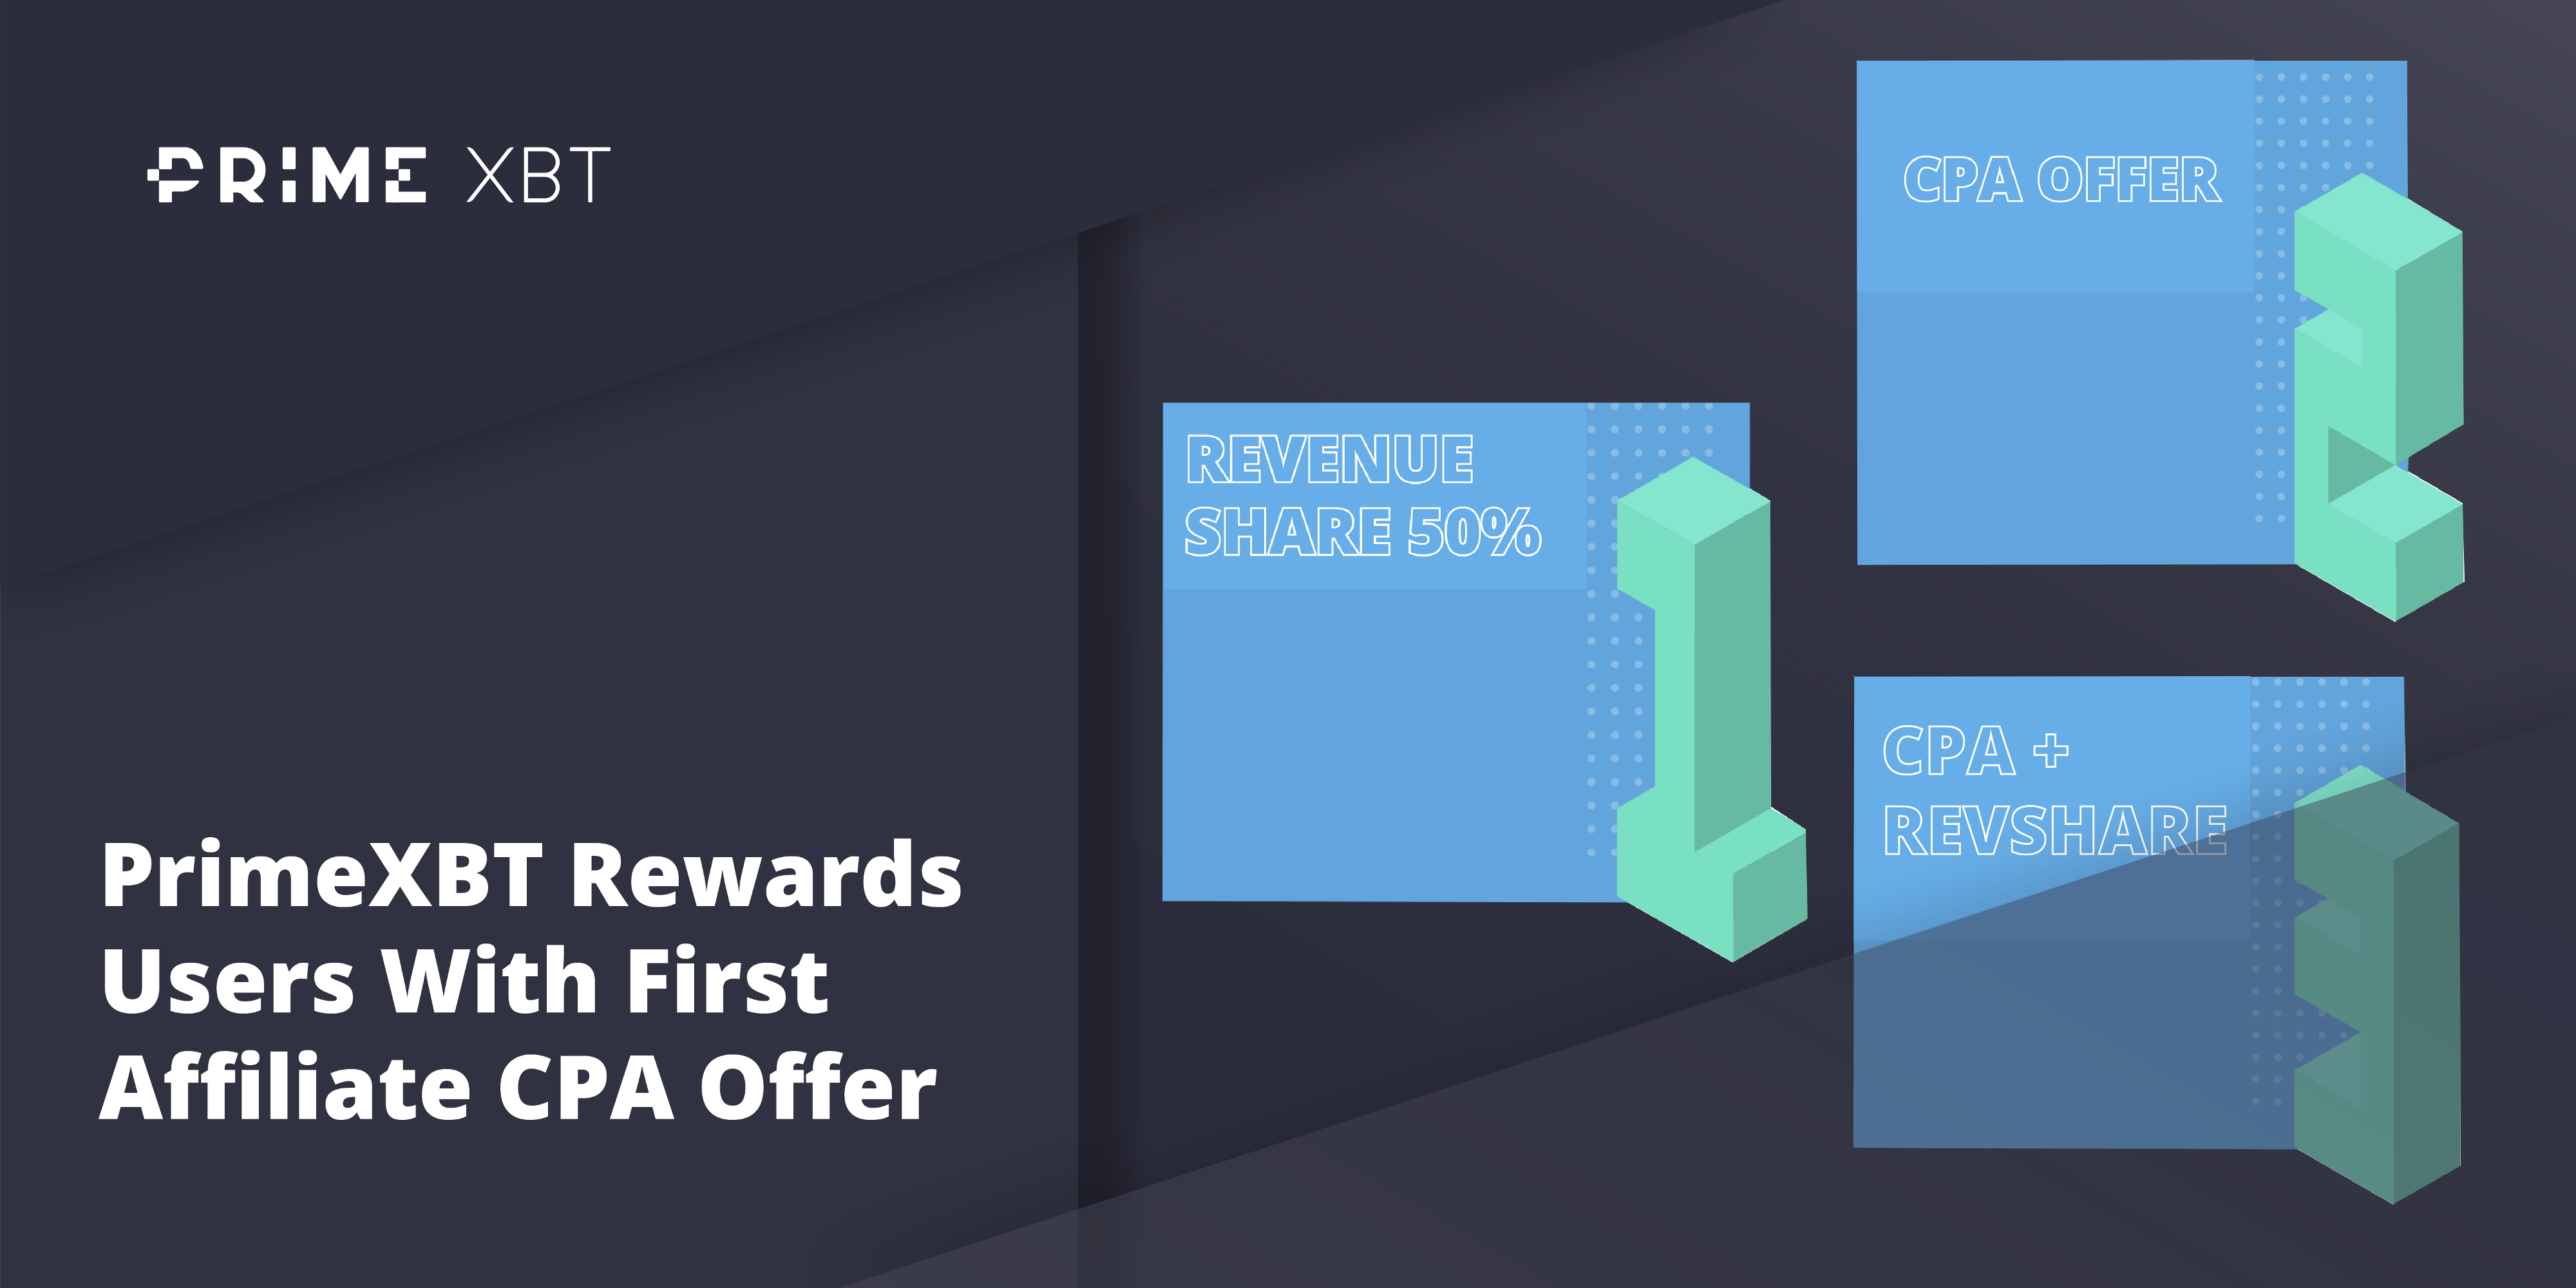 31.10.19 Blog Rewards  - PrimeXBT Rewards Users With First Affiliate CPA Offer